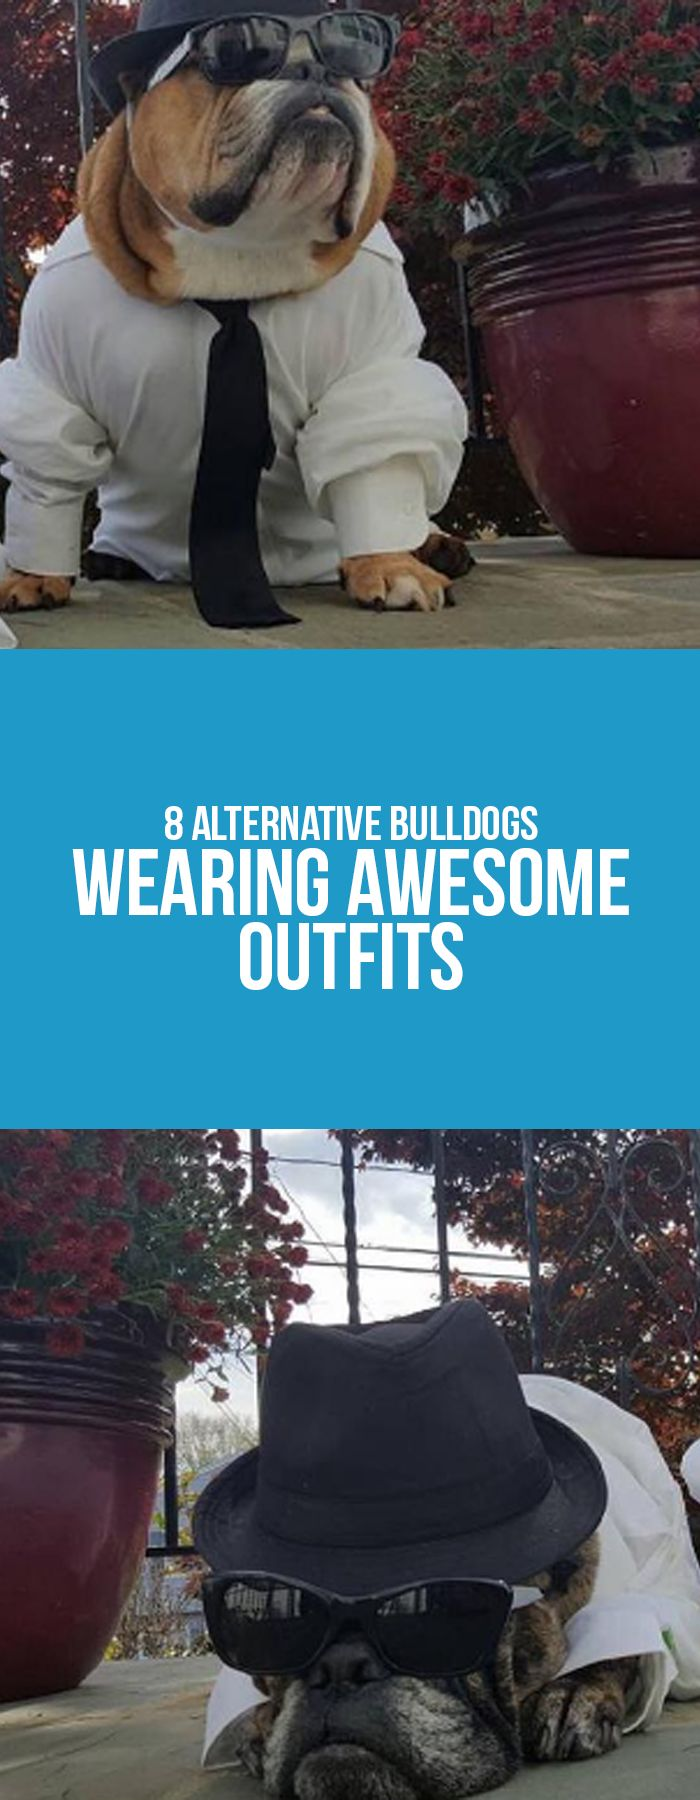 Keep the fun on our blog post!  #bulldogs #costumes #outfits # animals #pets #dogs #frenchies #tips #funny #puppies